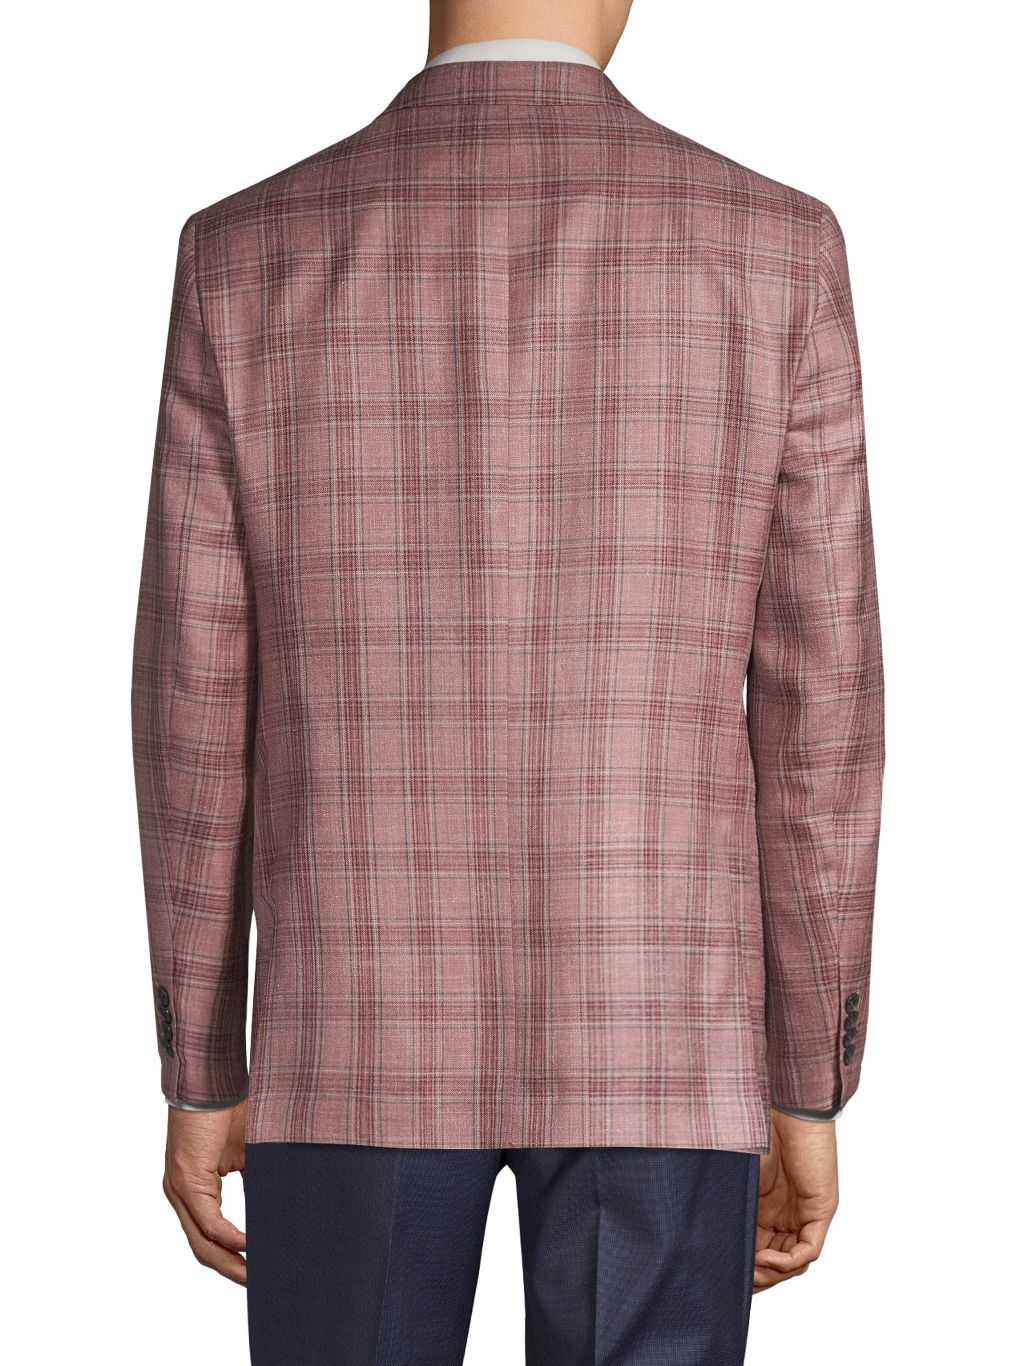 Saks Fifth Avenue Made in Italy Regular-Fit Plaid Wool, Silk & Linen Jacket